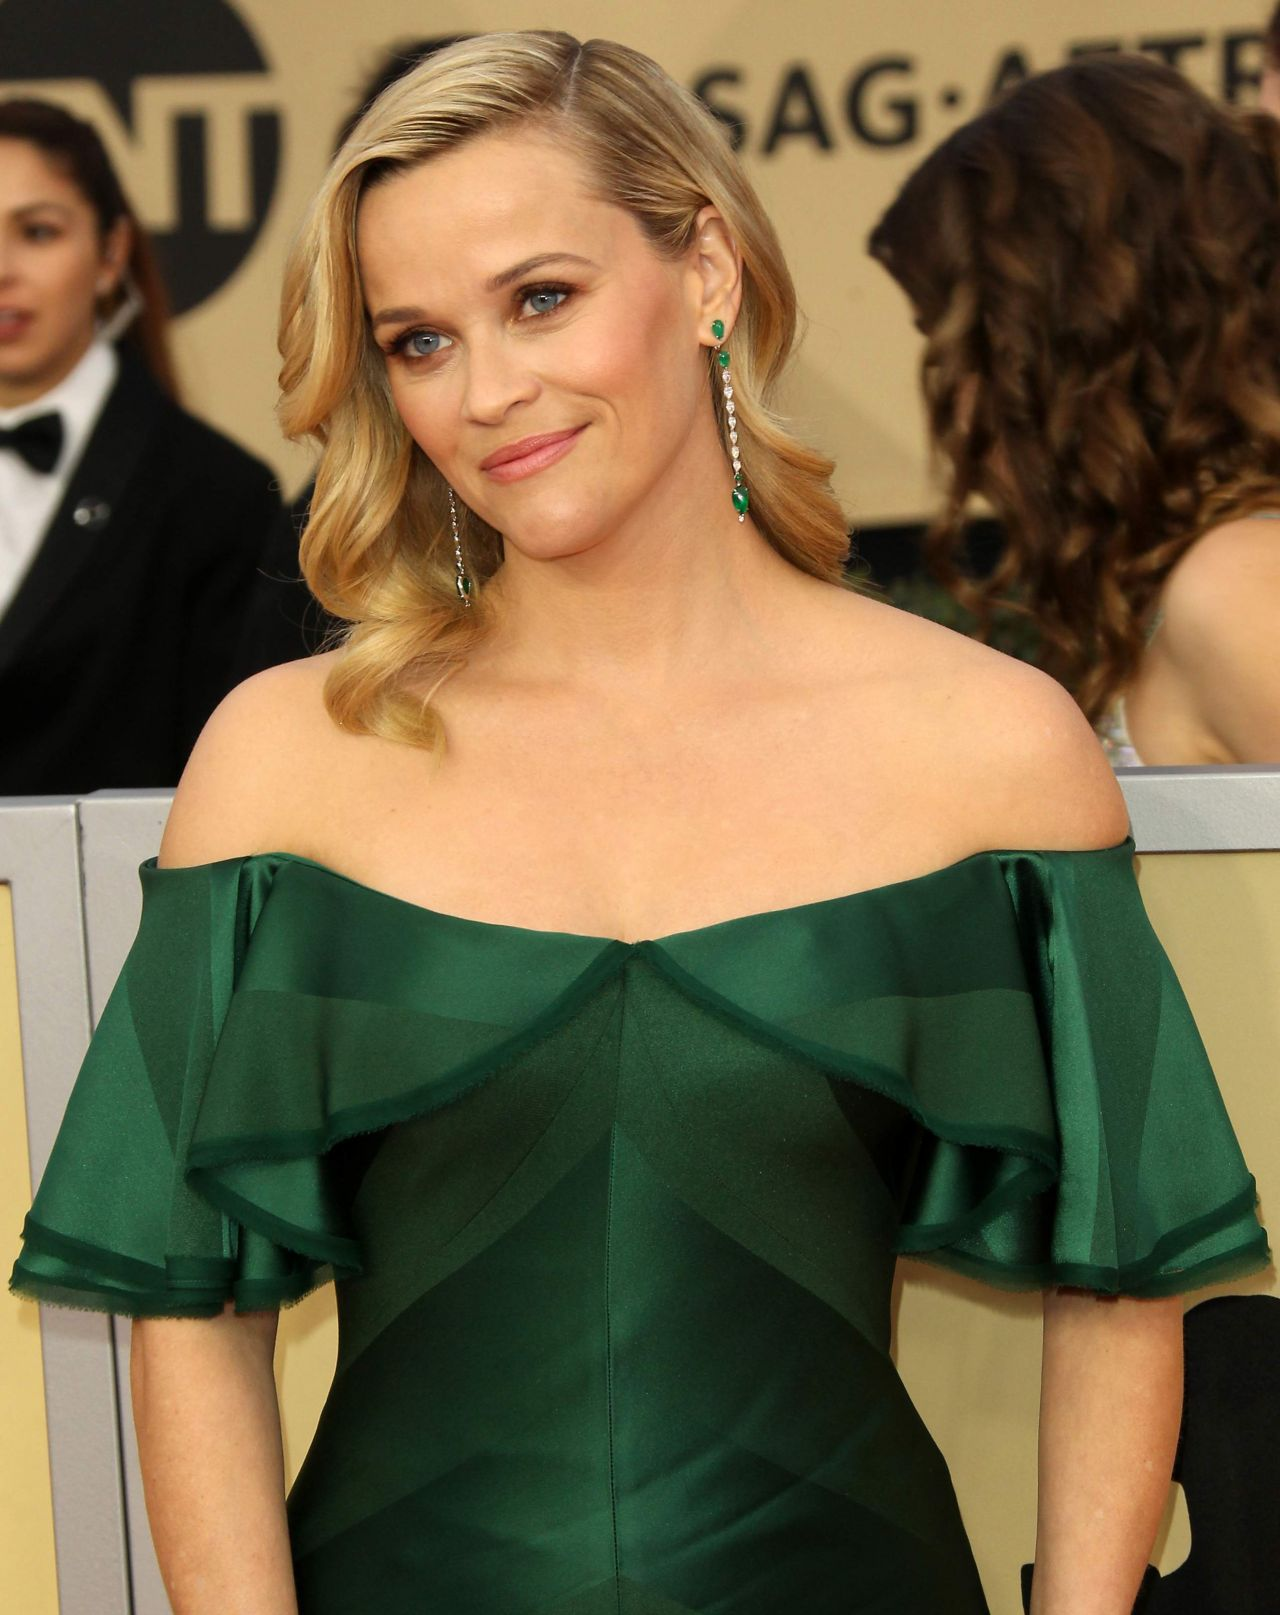 http://celebmafia.com/wp-content/uploads/2018/01/reese-witherspoon-2018-sag-awards-in-la-5.jpg